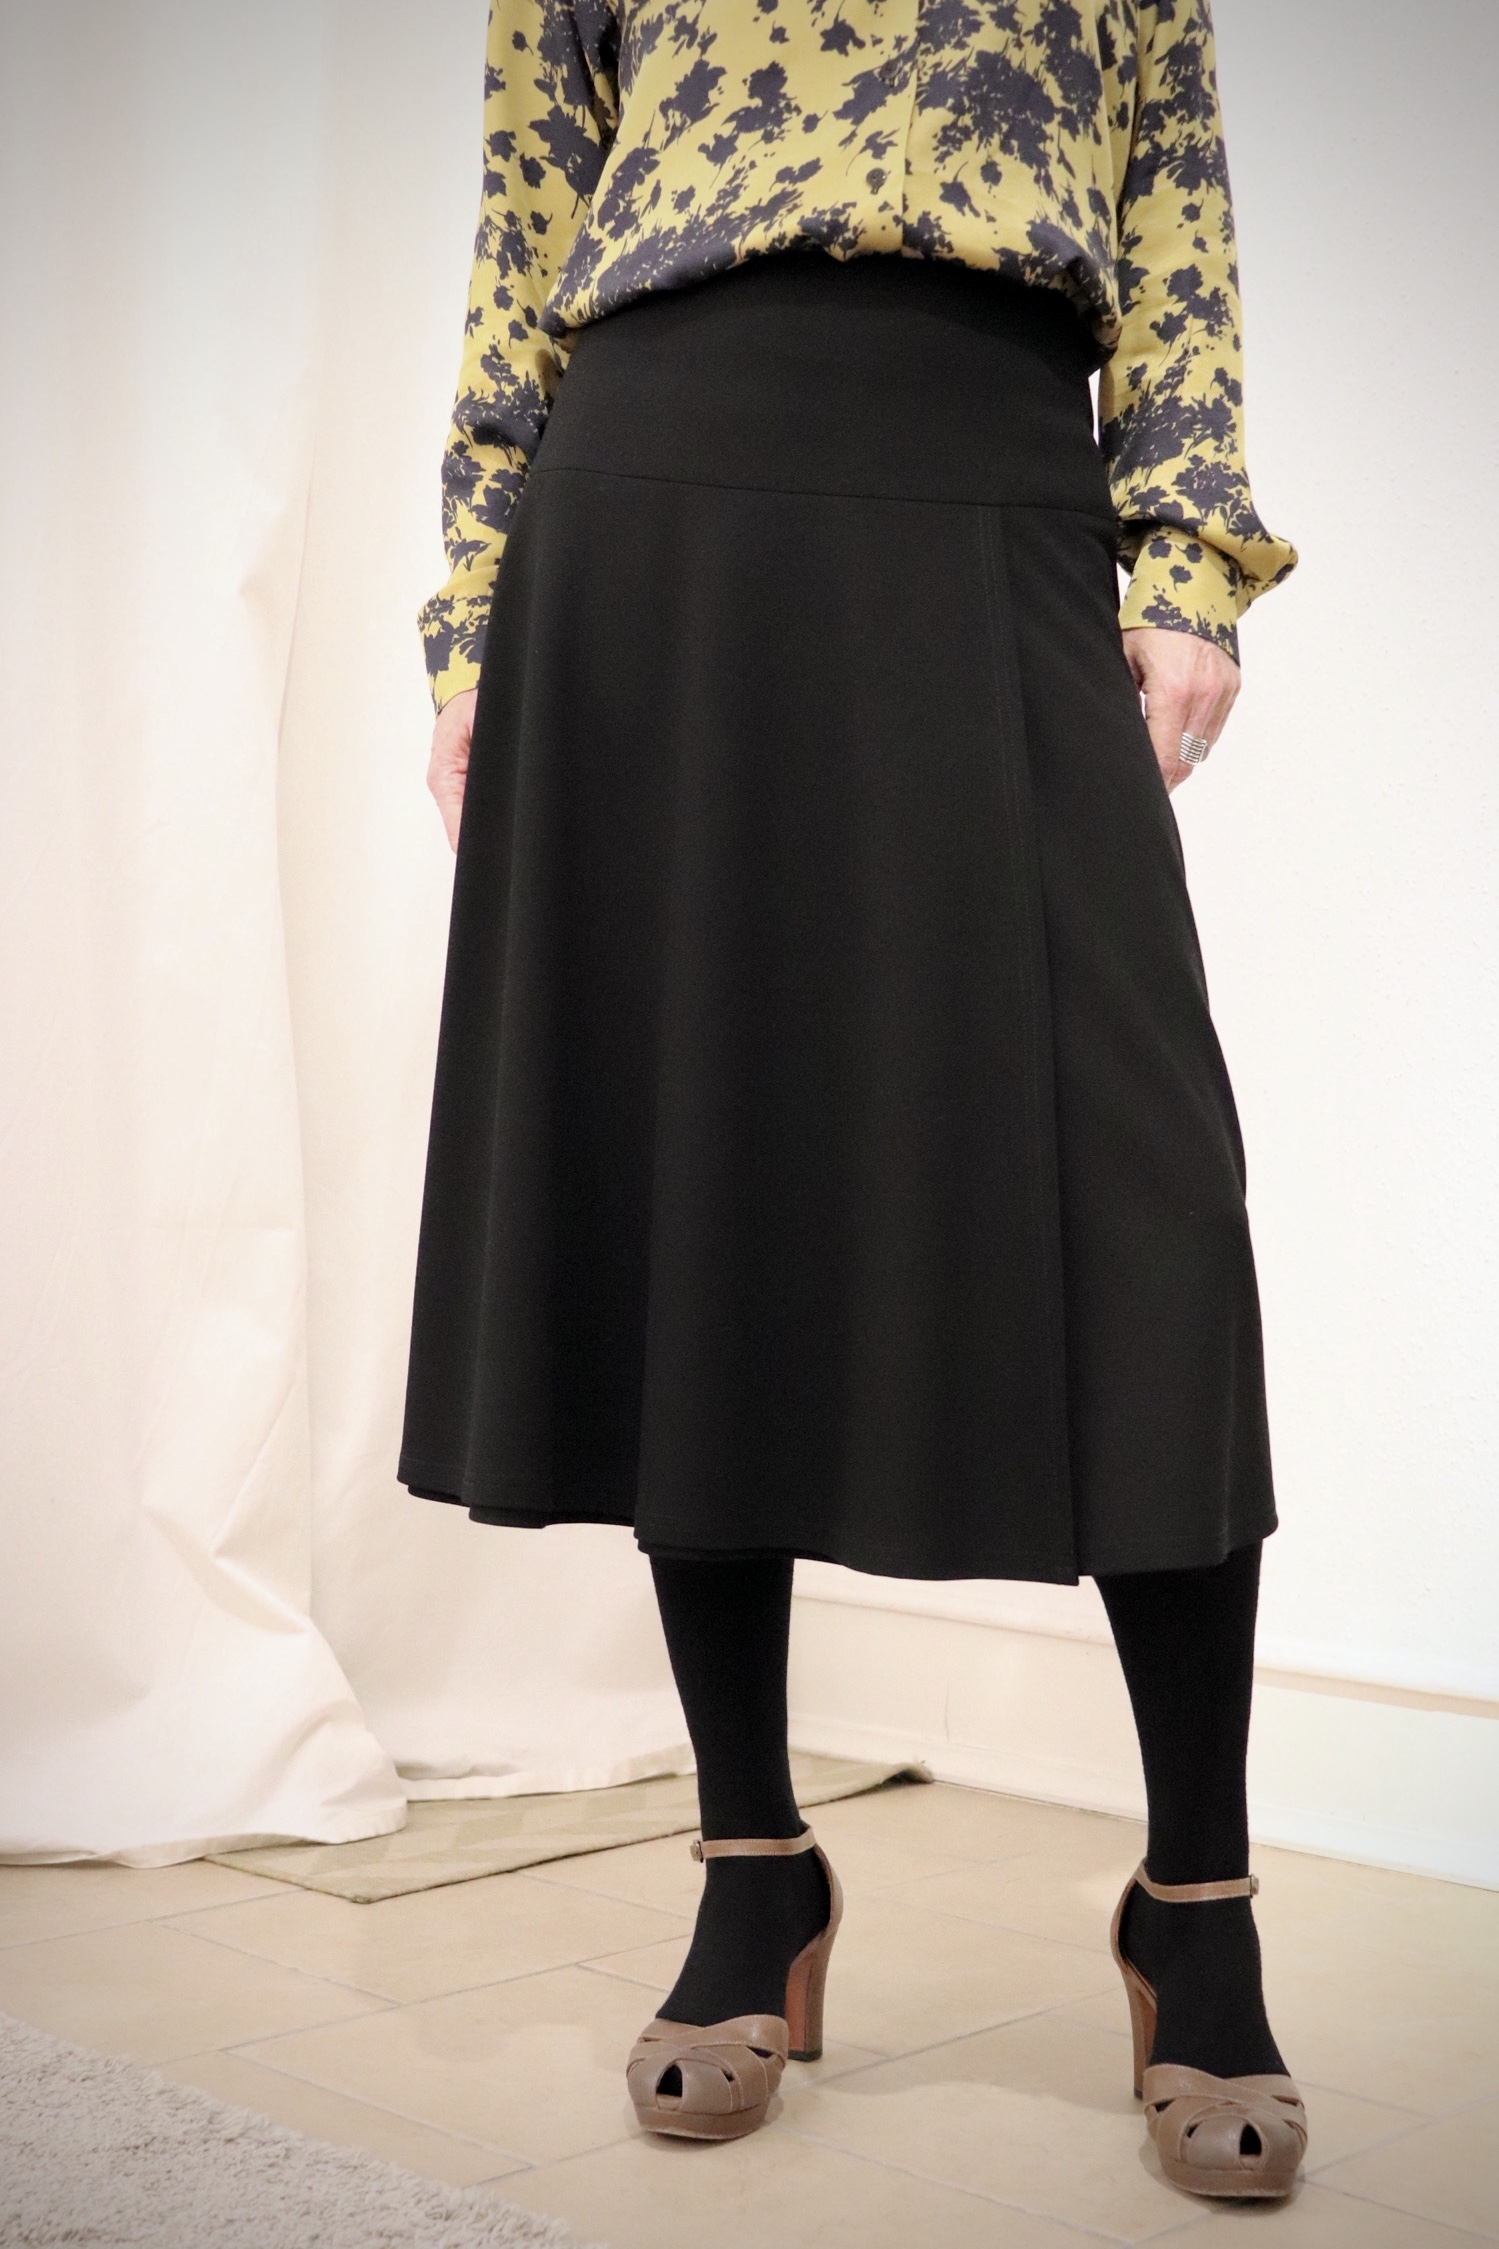 chichino skirt36 fw2020